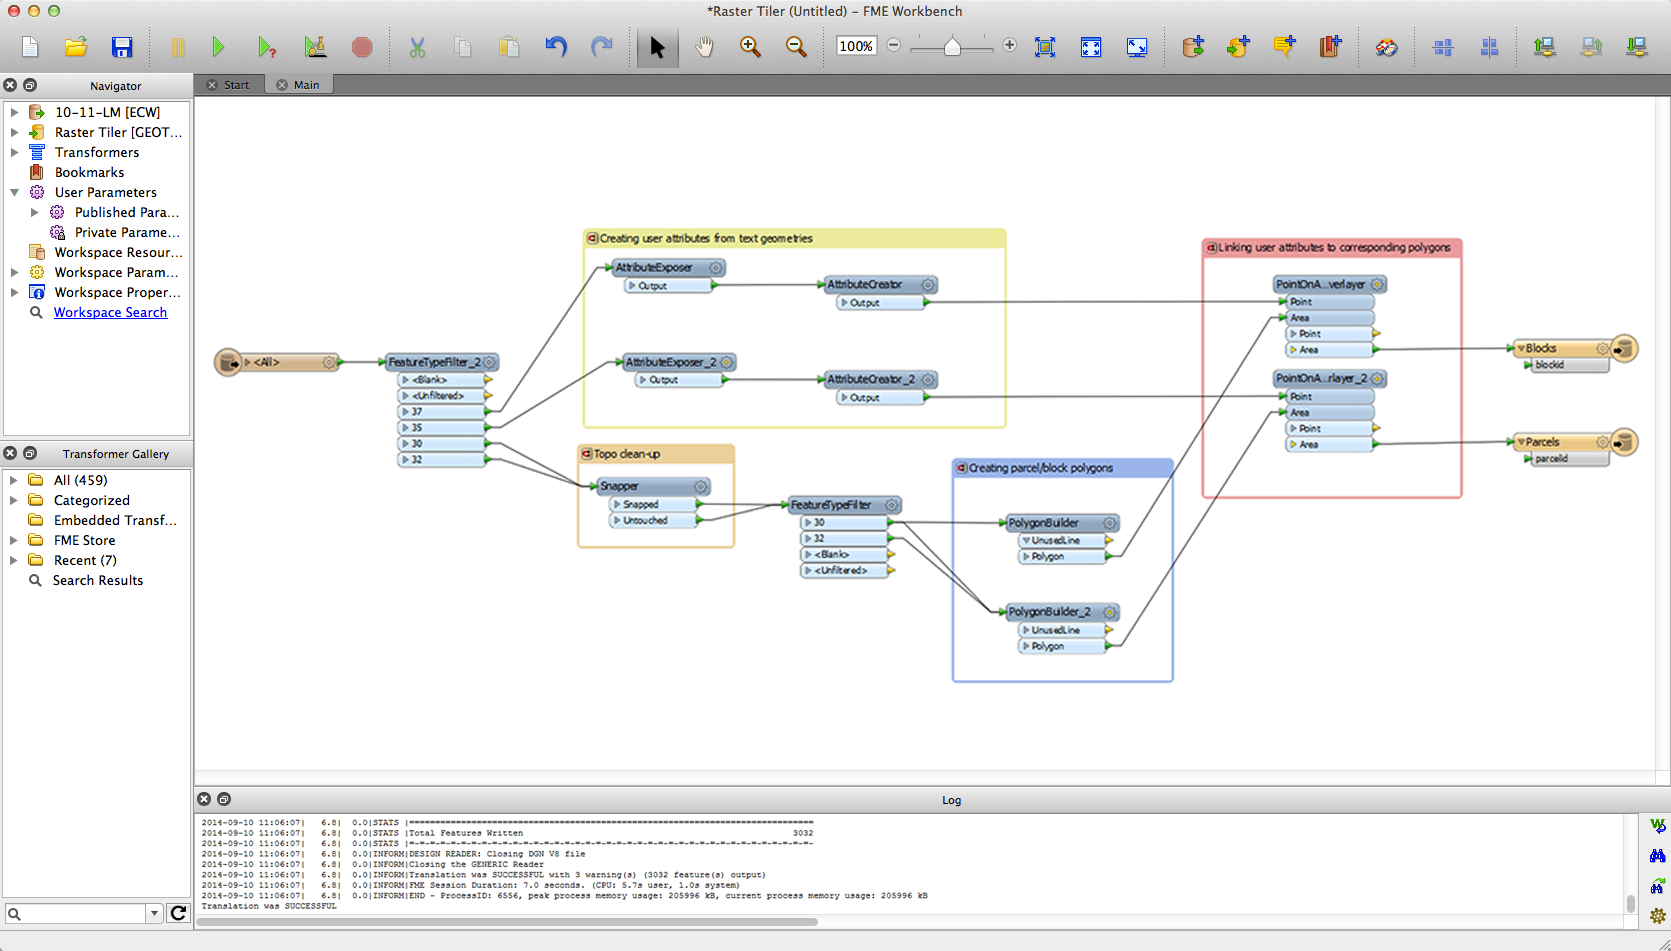 mapinfo example in fme workbench